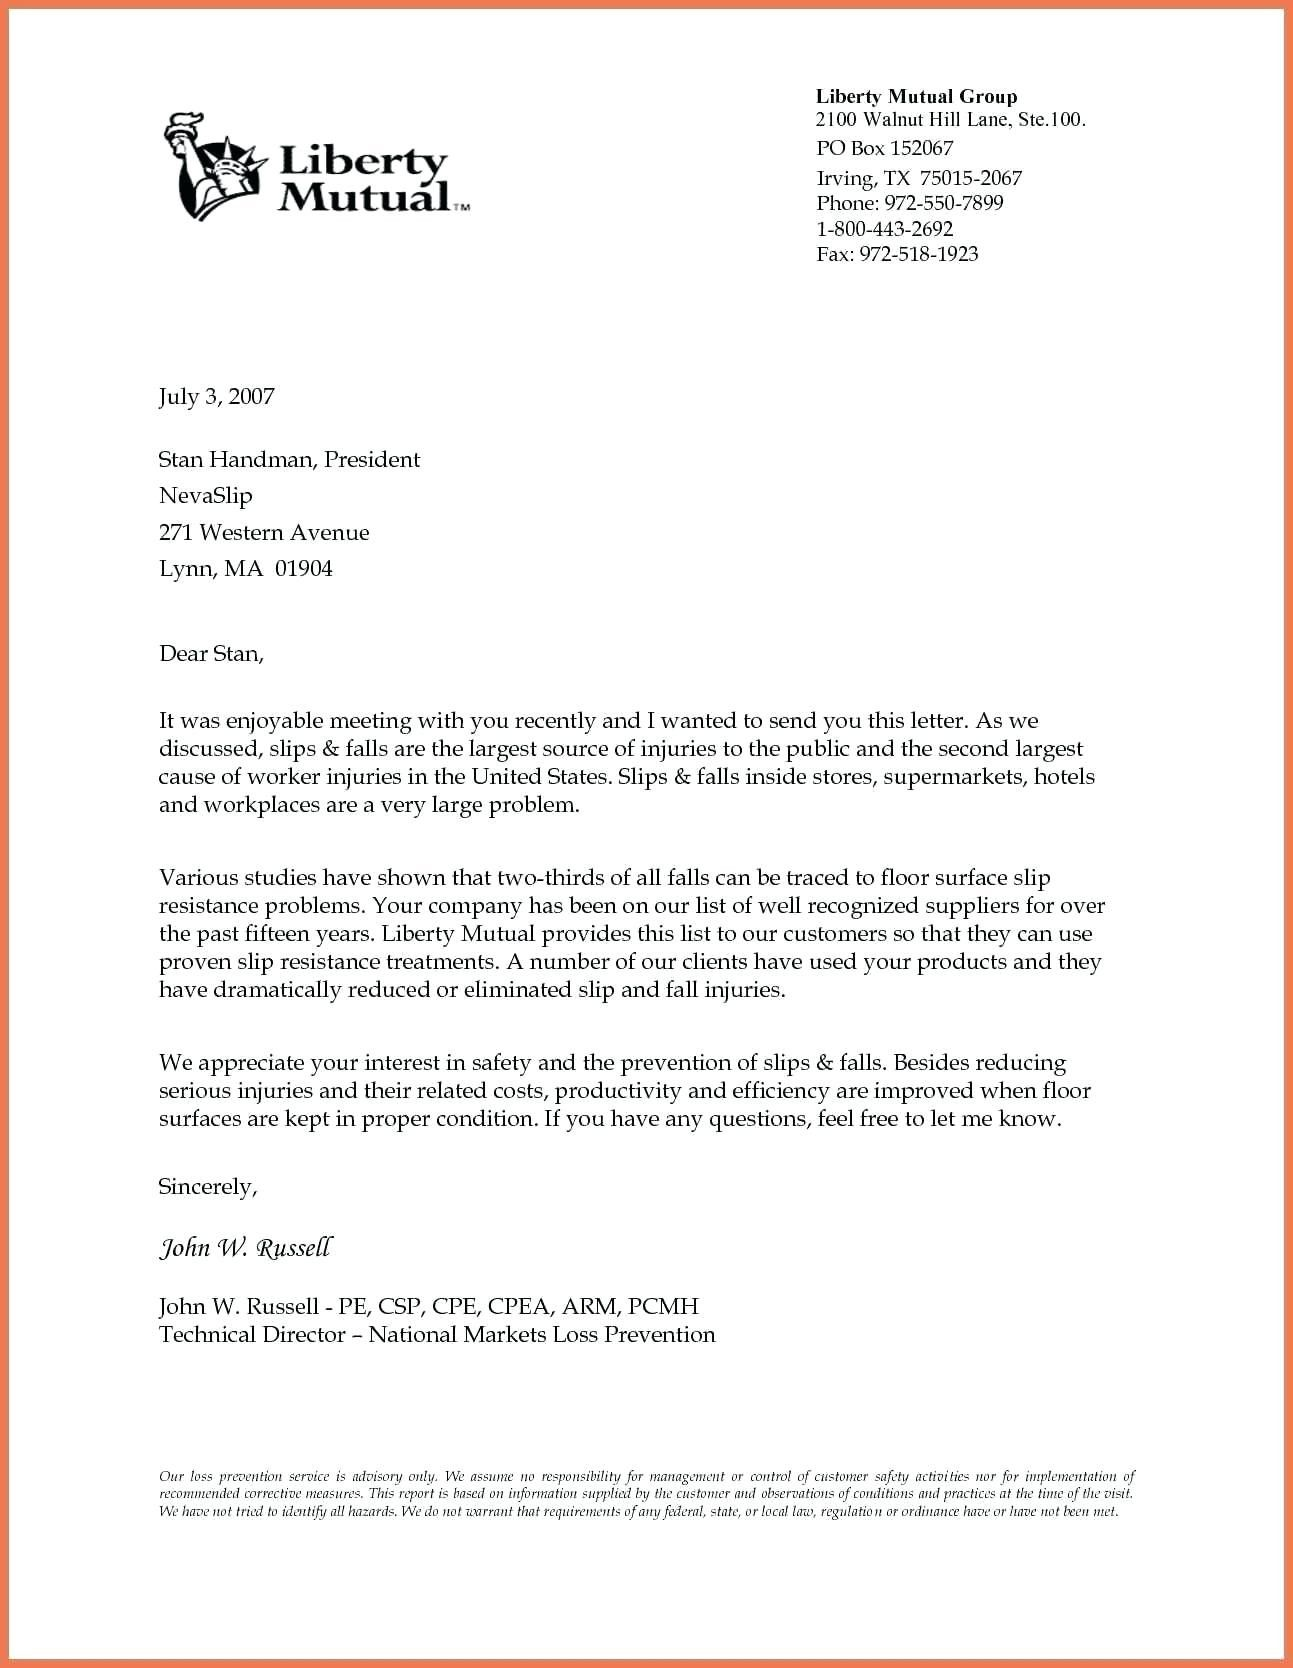 Formal Business Letter Templates 35 Formal / Business